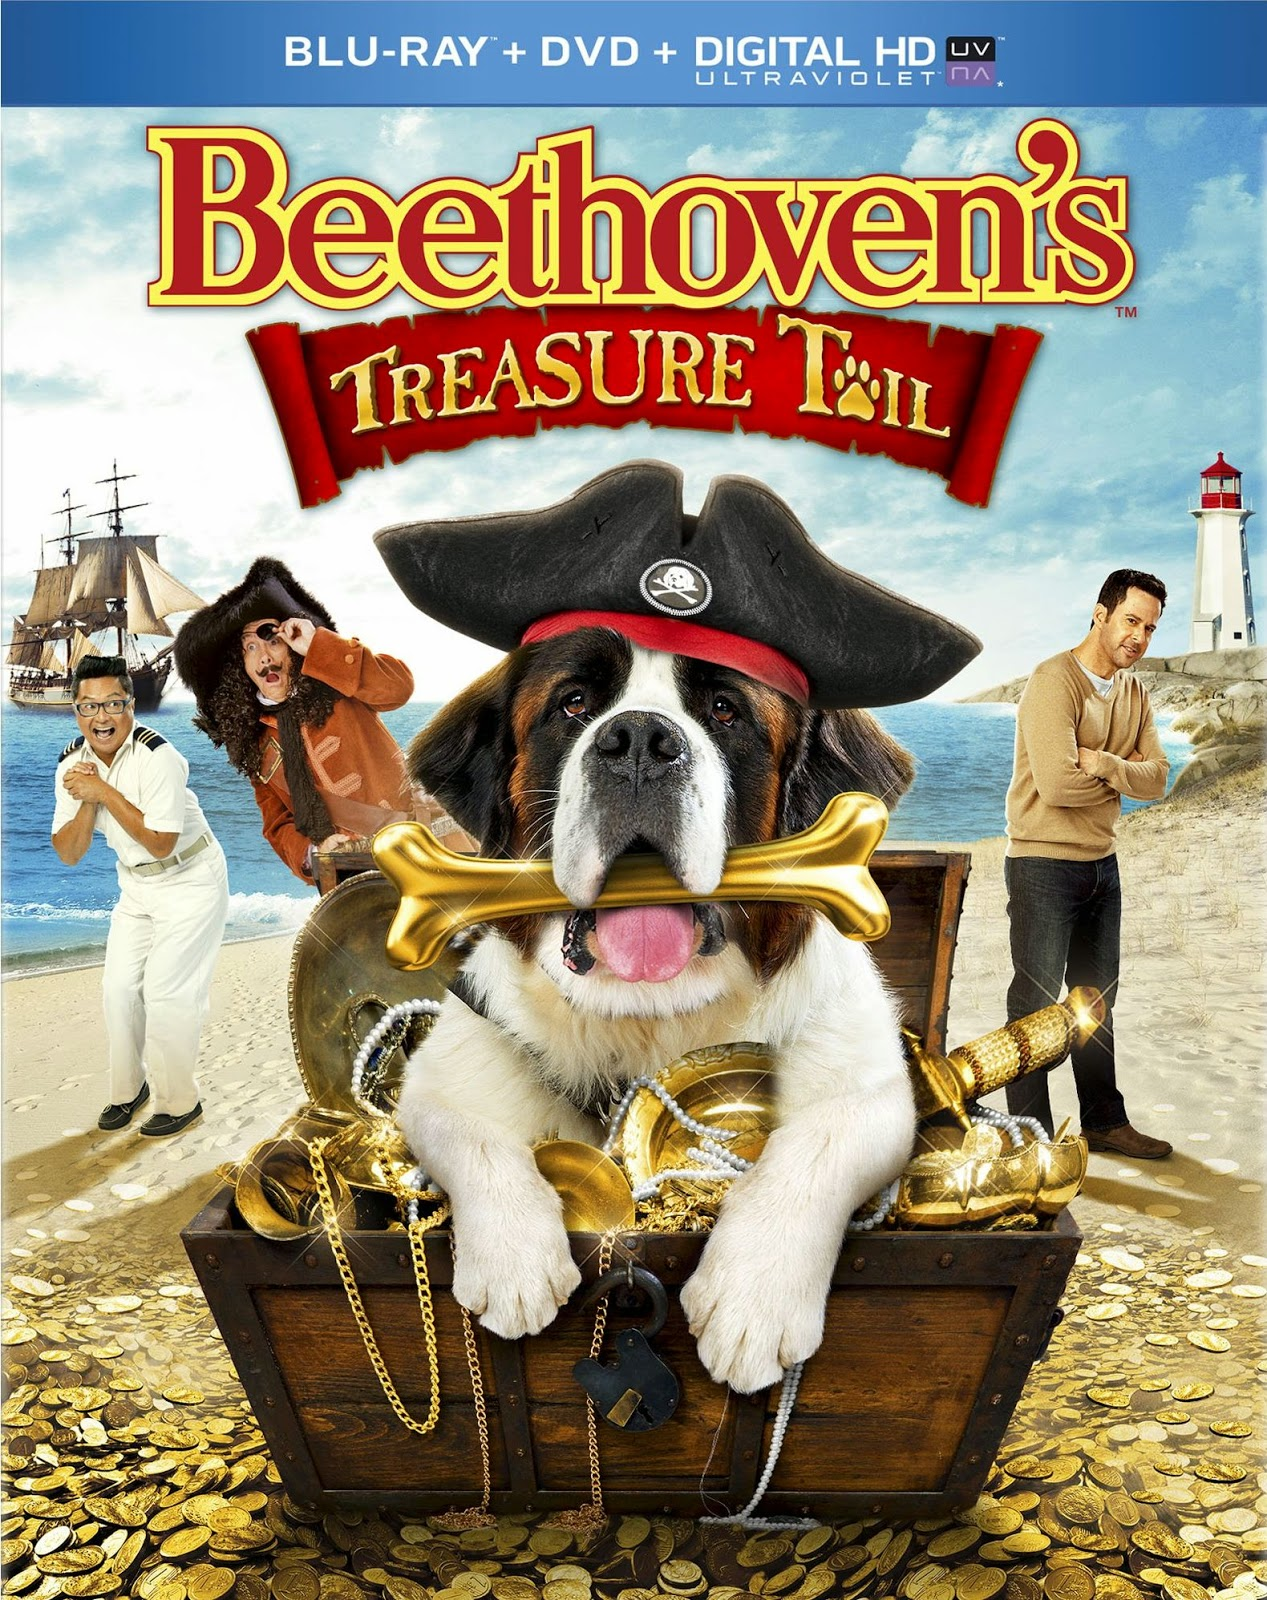 Baixar Filme Beethoven e o Tesouro Secreto Dublado Torrent